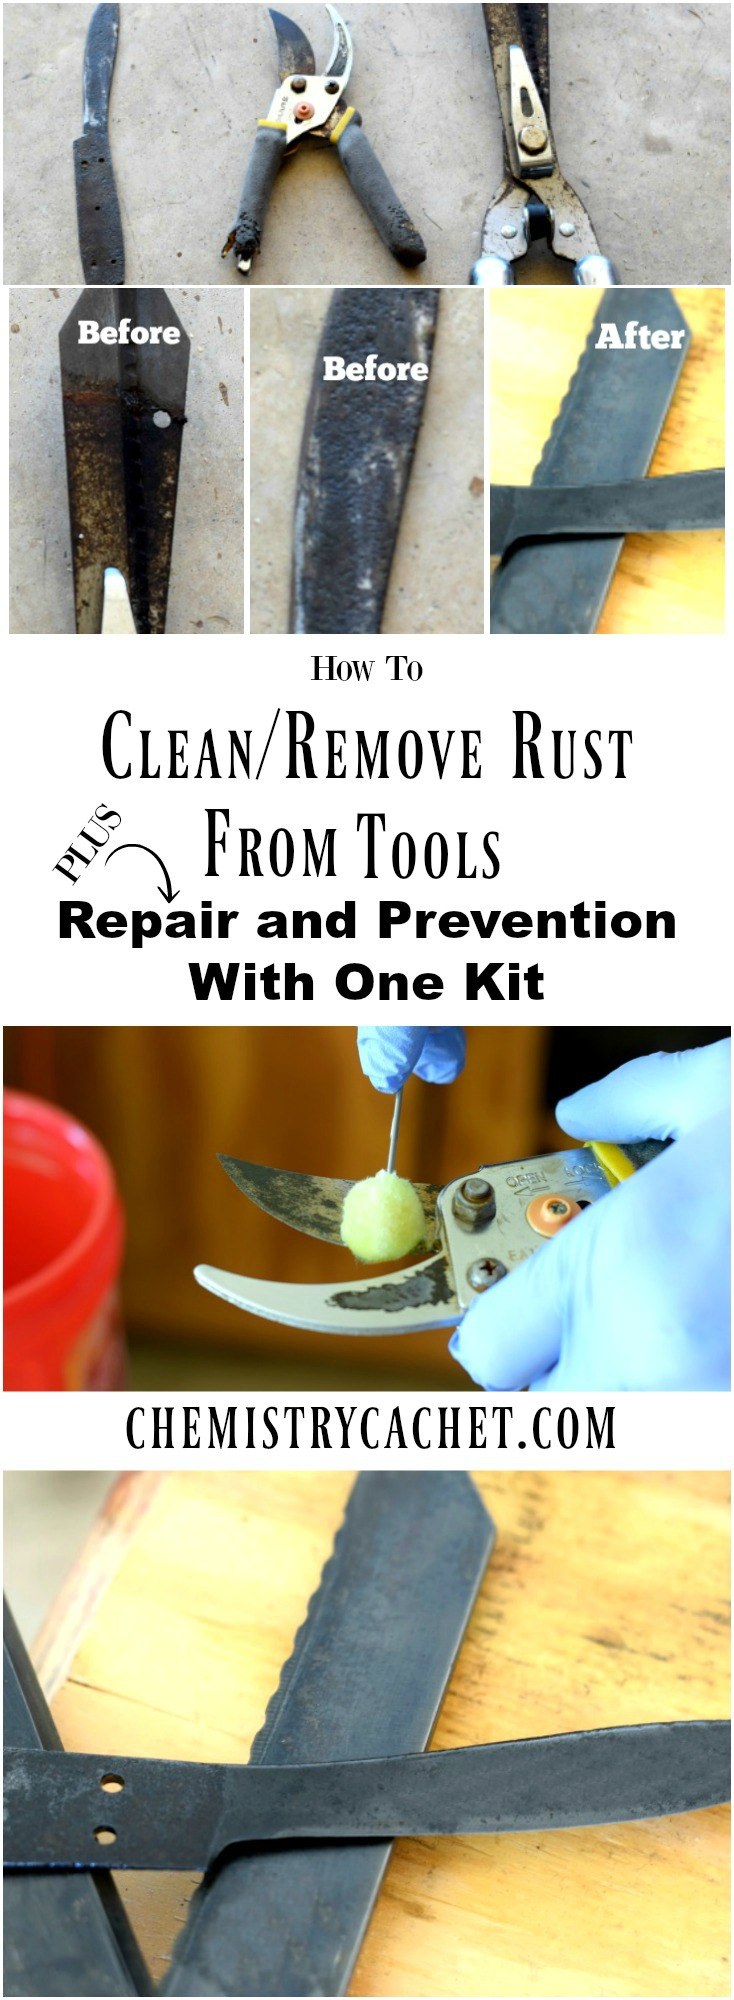 How to Remove Rust from Tools Plus Repairing and Preventing Rust with one simple kit! This is perfect for tools in REALLY bad shape. Tutorial on chemistrycachet.com